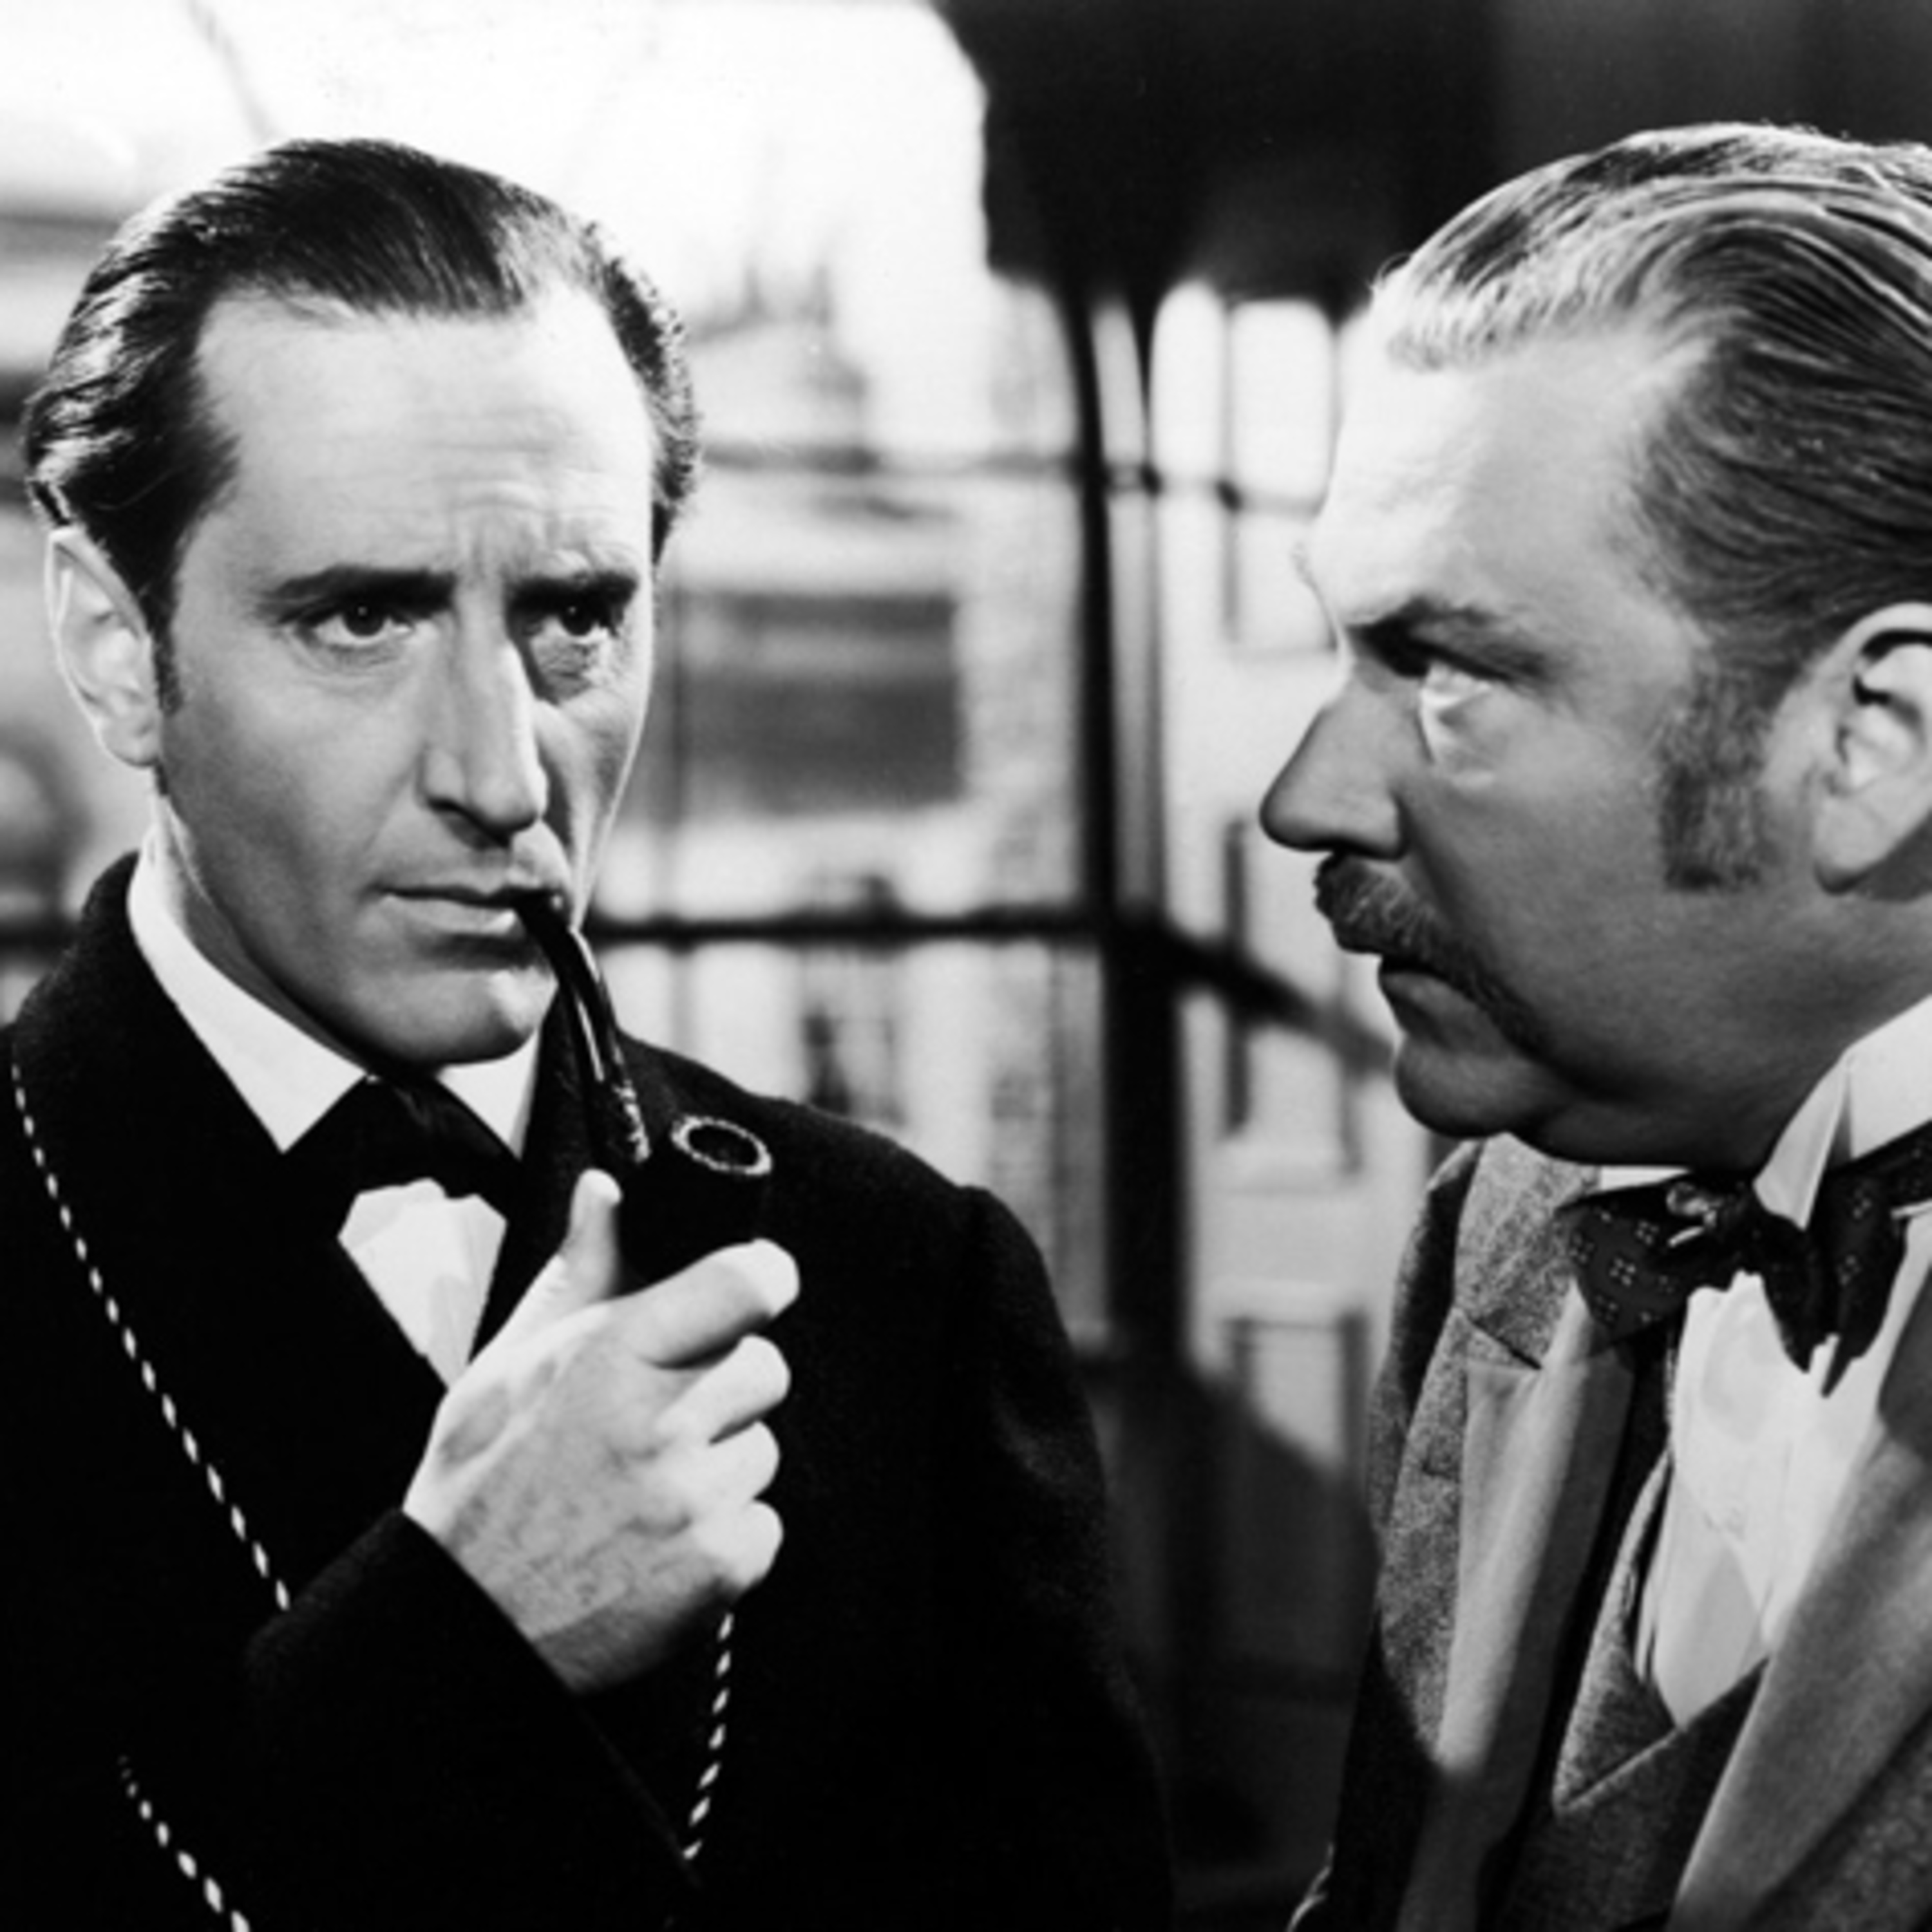 The New Adventures of Sherlock Holmes - Starring Basil Rathbone & Nigel Bruce - Haunting of Sherlock Holmes - Singular Affair of the Baconian Cipher